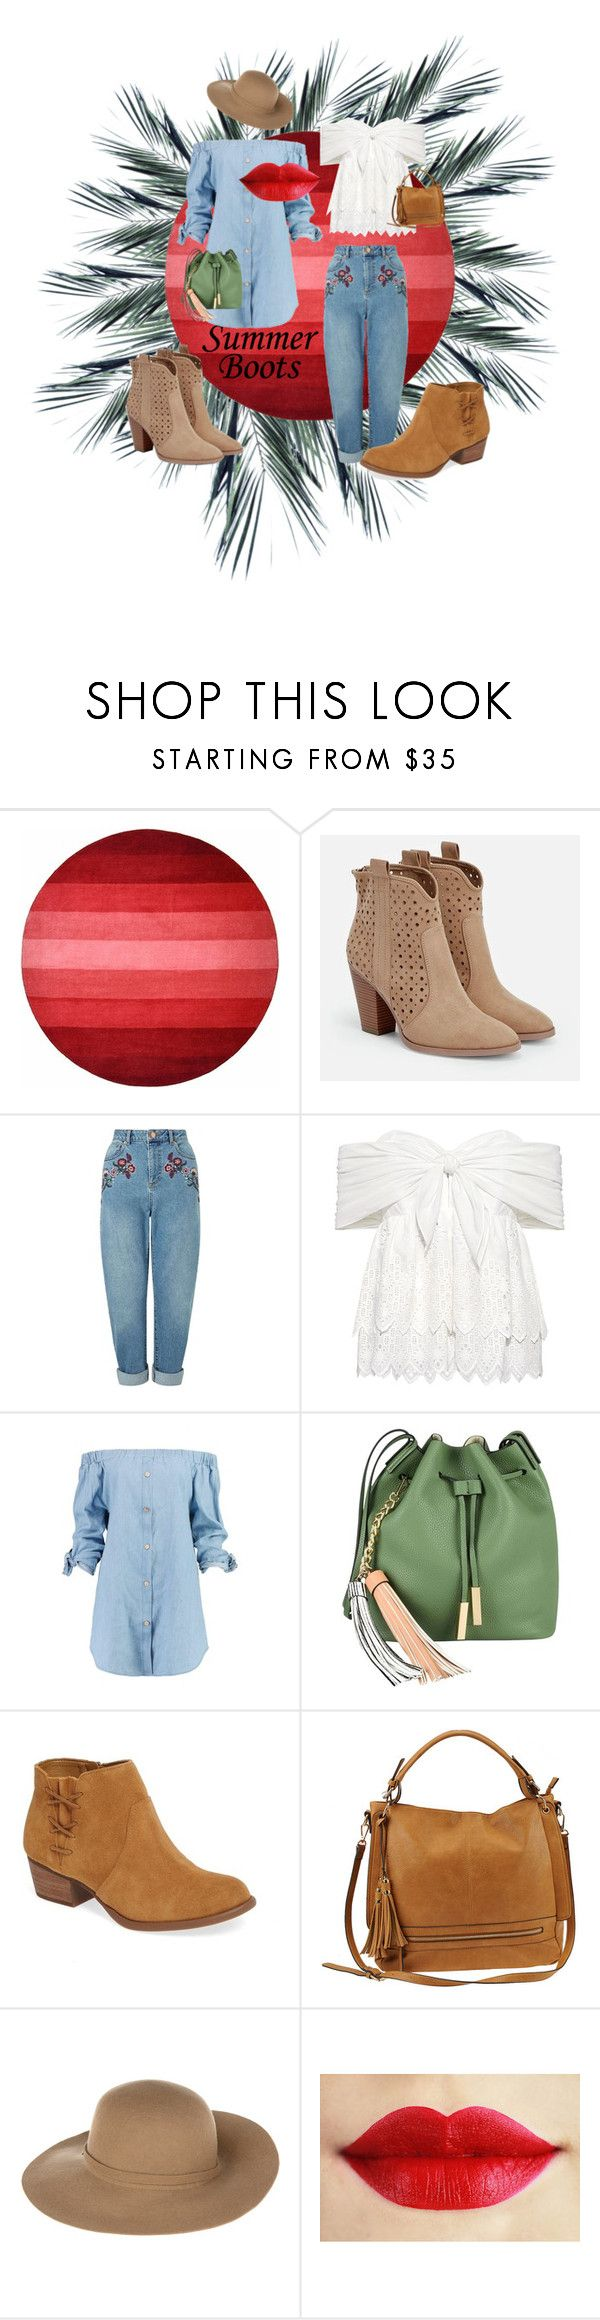 """""""summer boots .. casual summer style with breathable boots"""" by becksrose ❤ liked on Polyvore featuring JustFab, Miss Selfridge, Sea, New York, Boohoo, Nali, Jessica Simpson, Urban Expressions and Armani Jeans"""